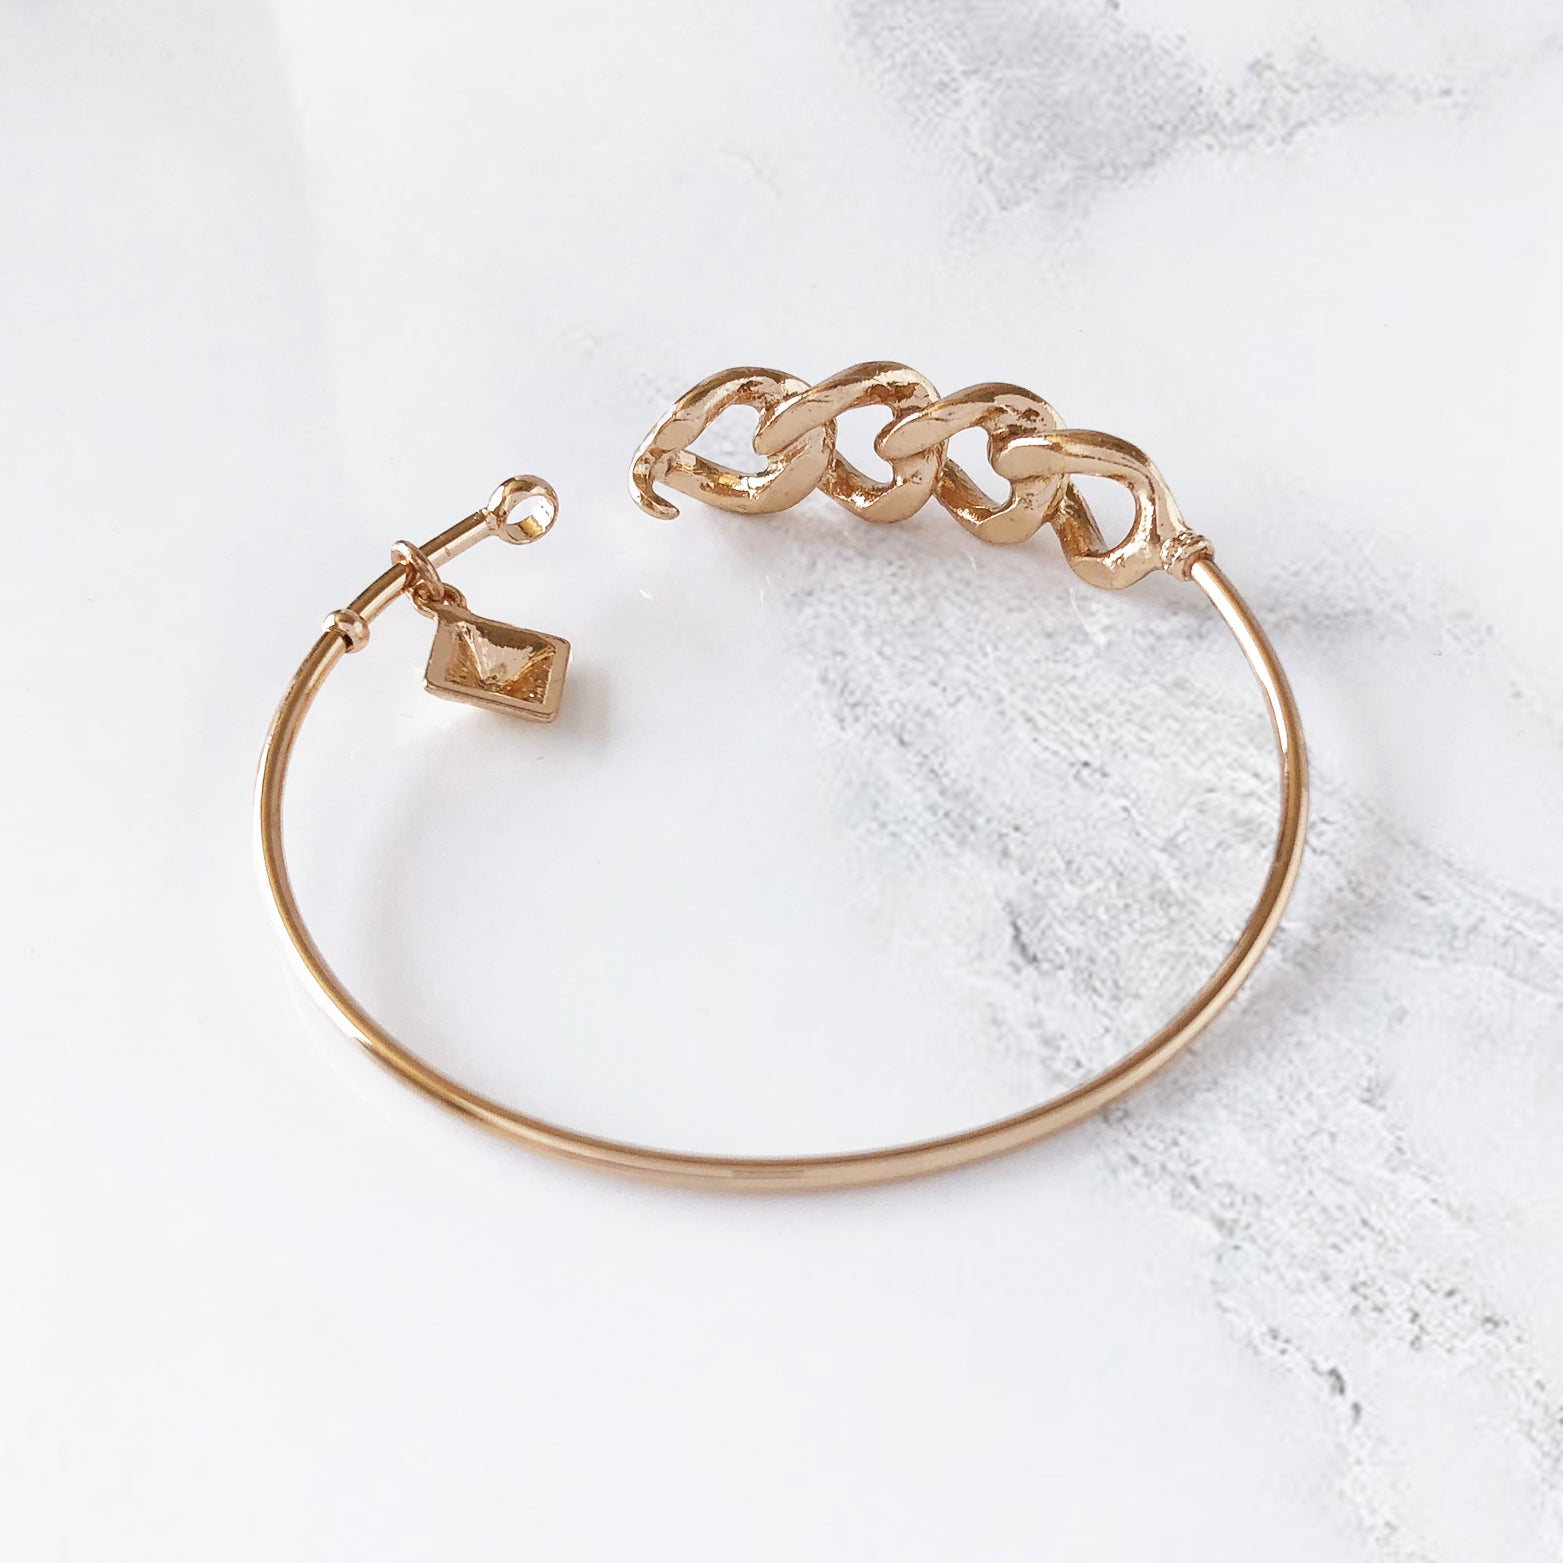 Curb Chain & Charm Bangle